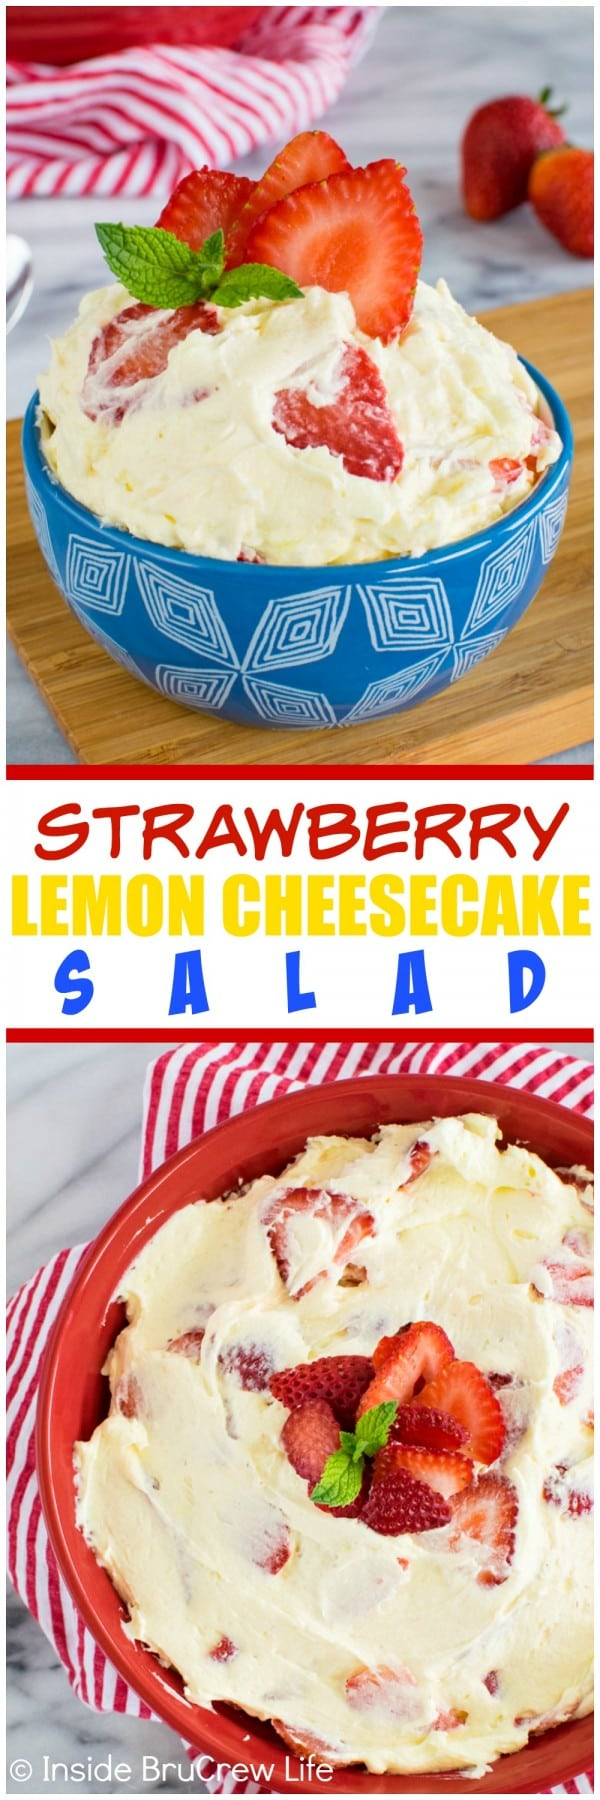 Strawberry Lemon Cheesecake Salad - fresh berries and lemon pie filling make this easy cheesecake salad disappear in a hurry! Awesome no bake recipe for picnics!